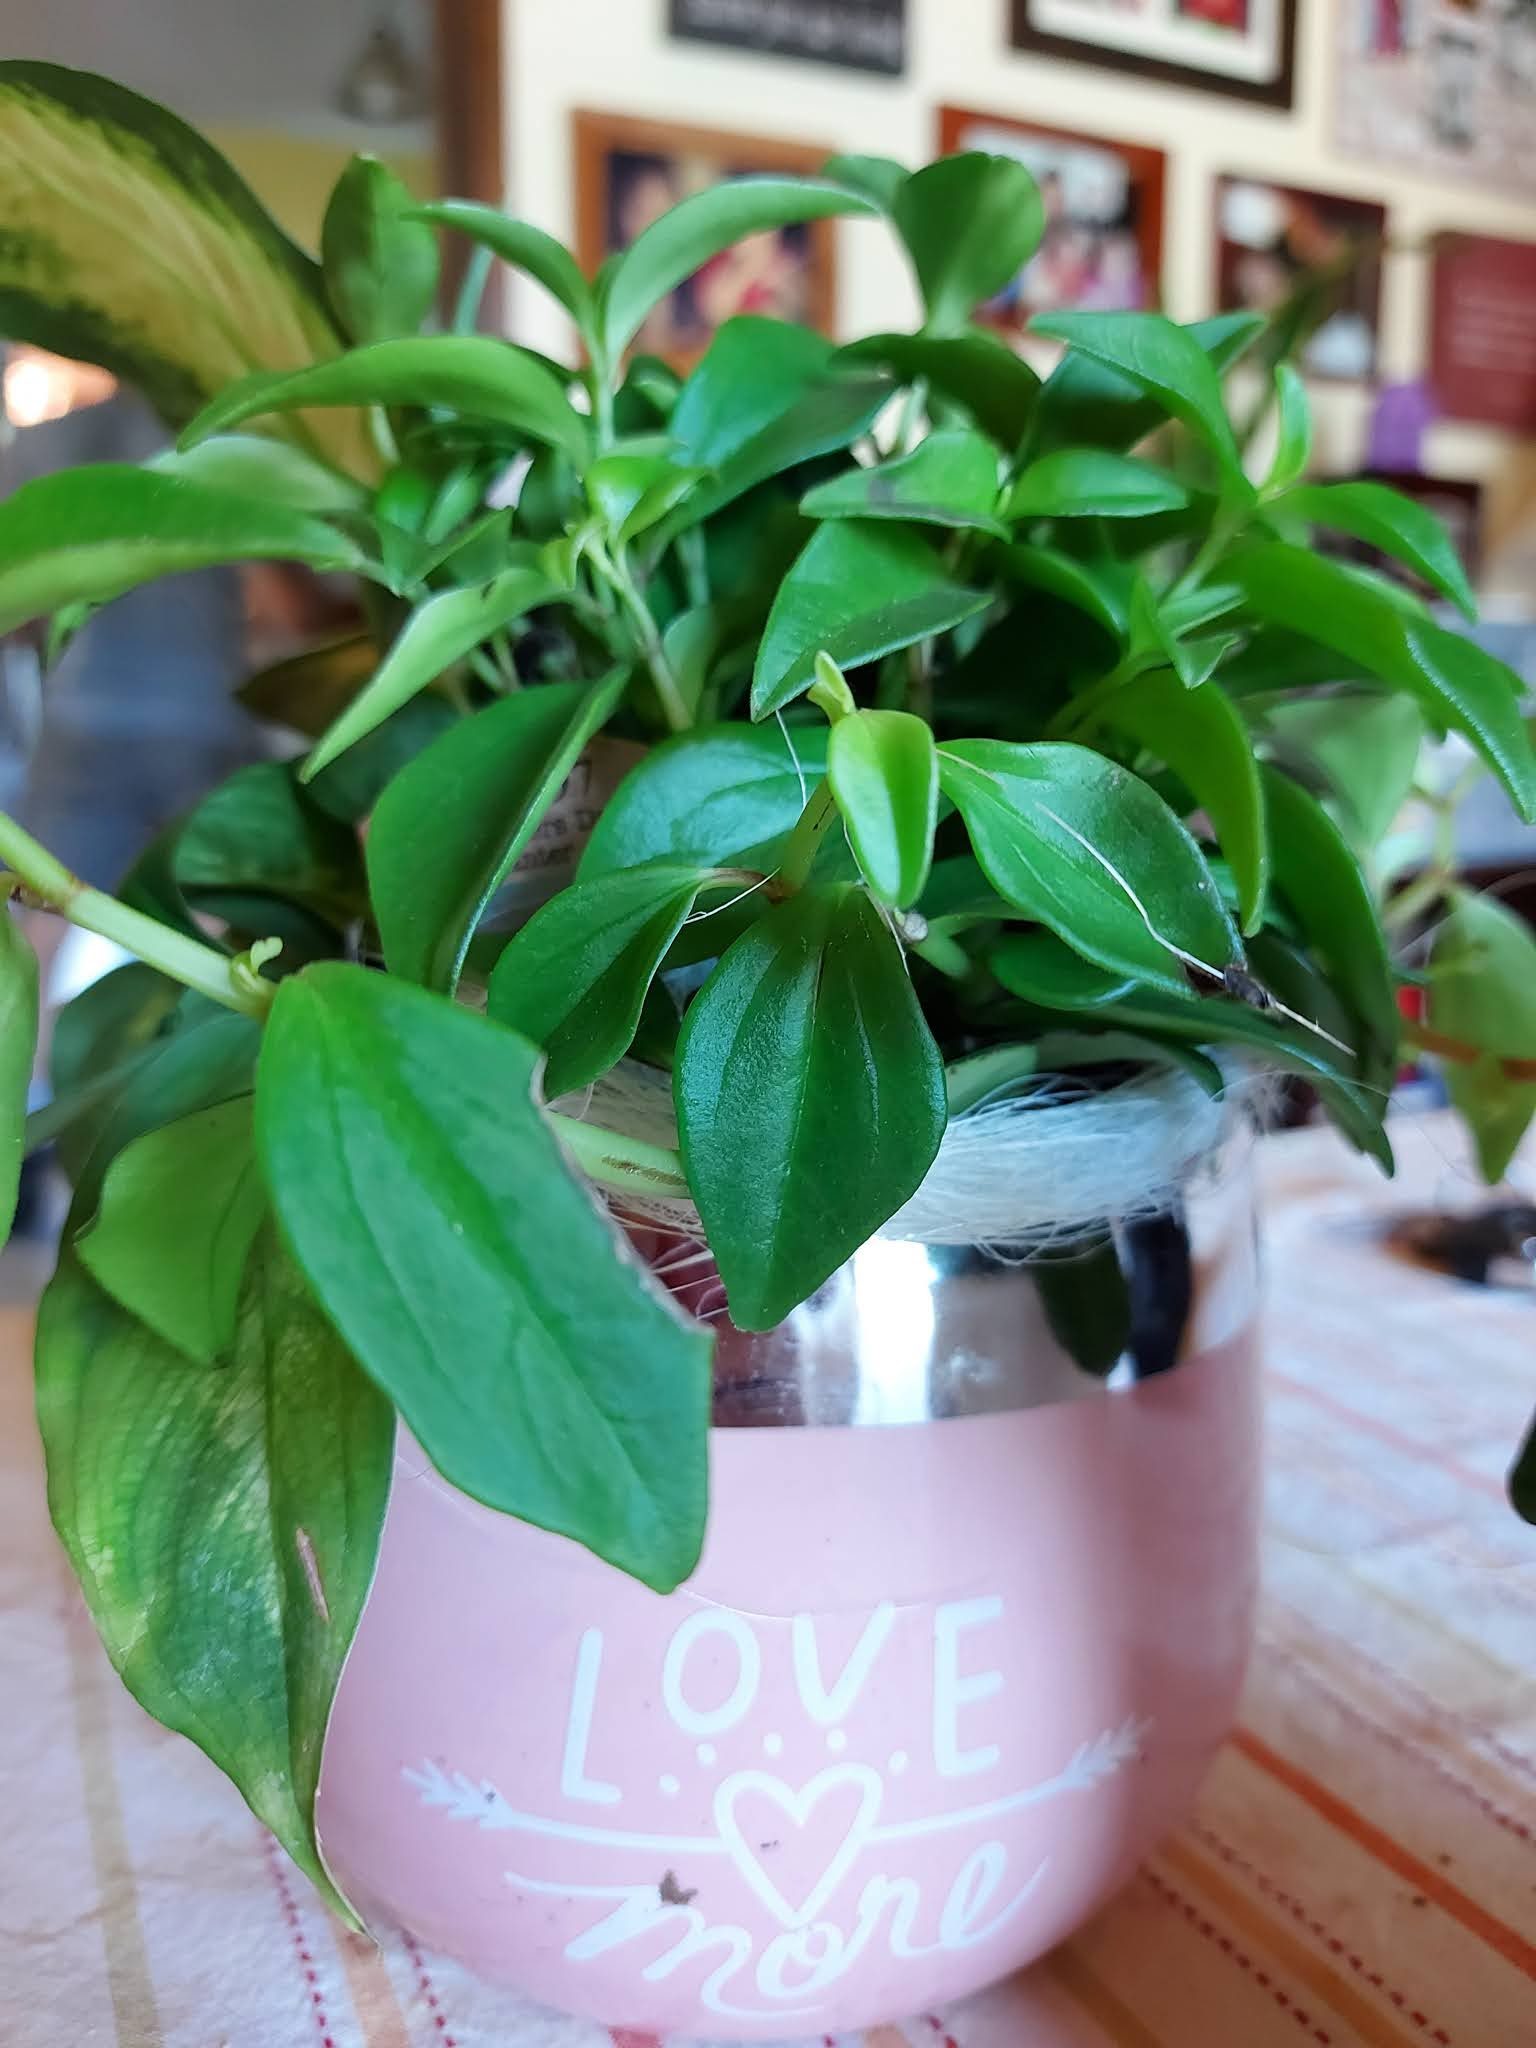 However, there's something that I love too that I can take care of— the house plants.  Happy Mother's Day!